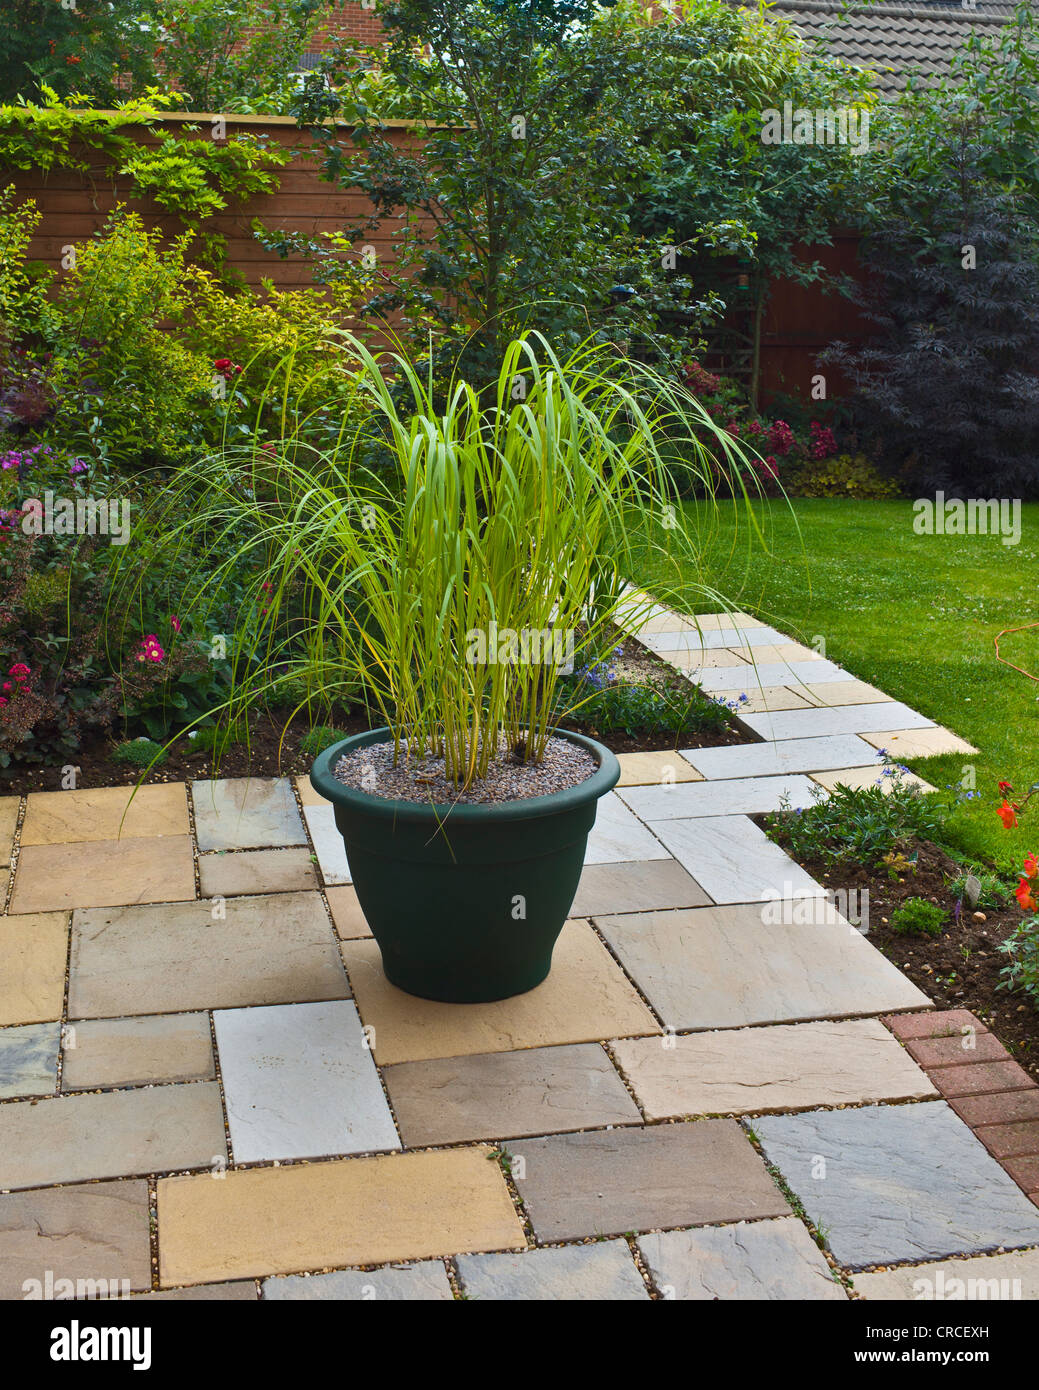 Small garden patio with large pot of ornamental grasses - Stock Image